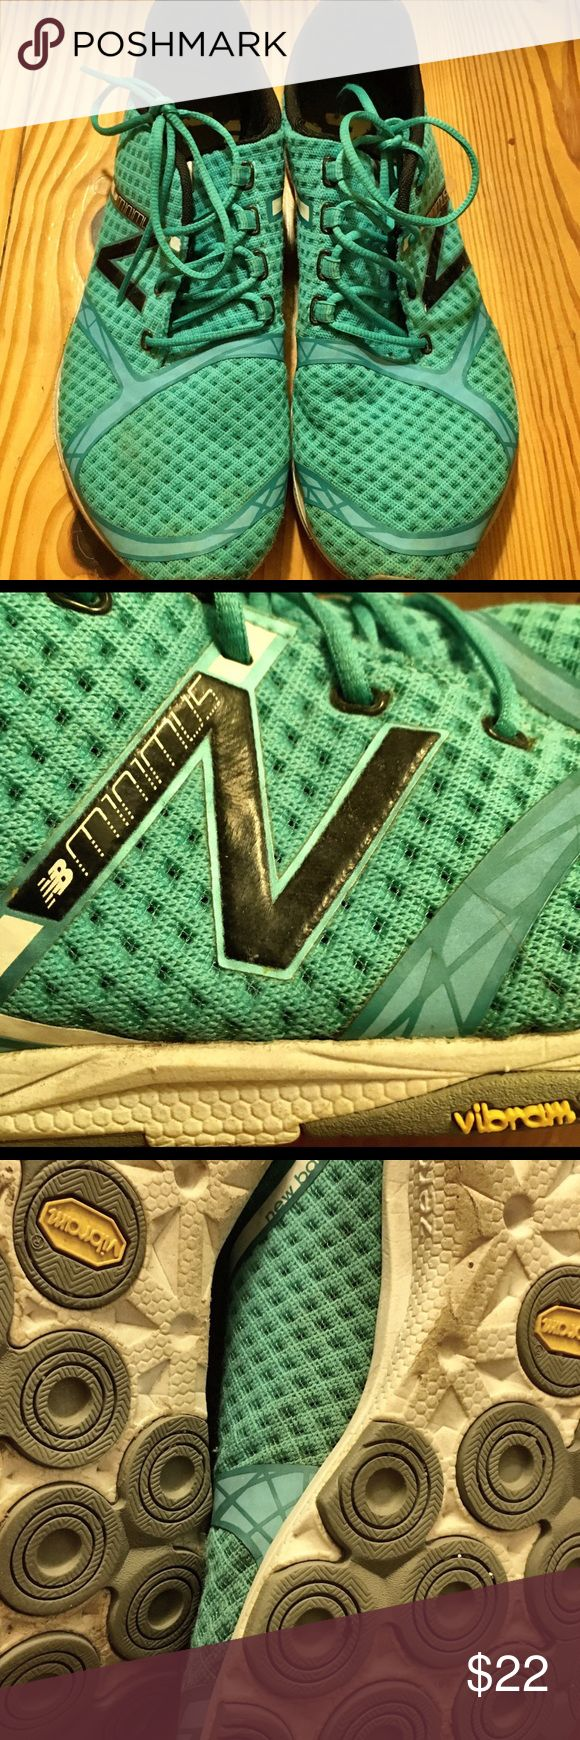 """New Balance Minimus Running Shoes NEW BALANCE WOMEN'S TEAL MINIMUS ZERO DROP ATHLETIC SHOES! Teal in color with """"N"""" of new balance in black on sides of shoes.  Vibram designed, feels like you are wearing a padded sock - very comfortable.   Good condition, some wear on soles (please see pic).  Women's size 10 New Balance Shoes Athletic Shoes"""